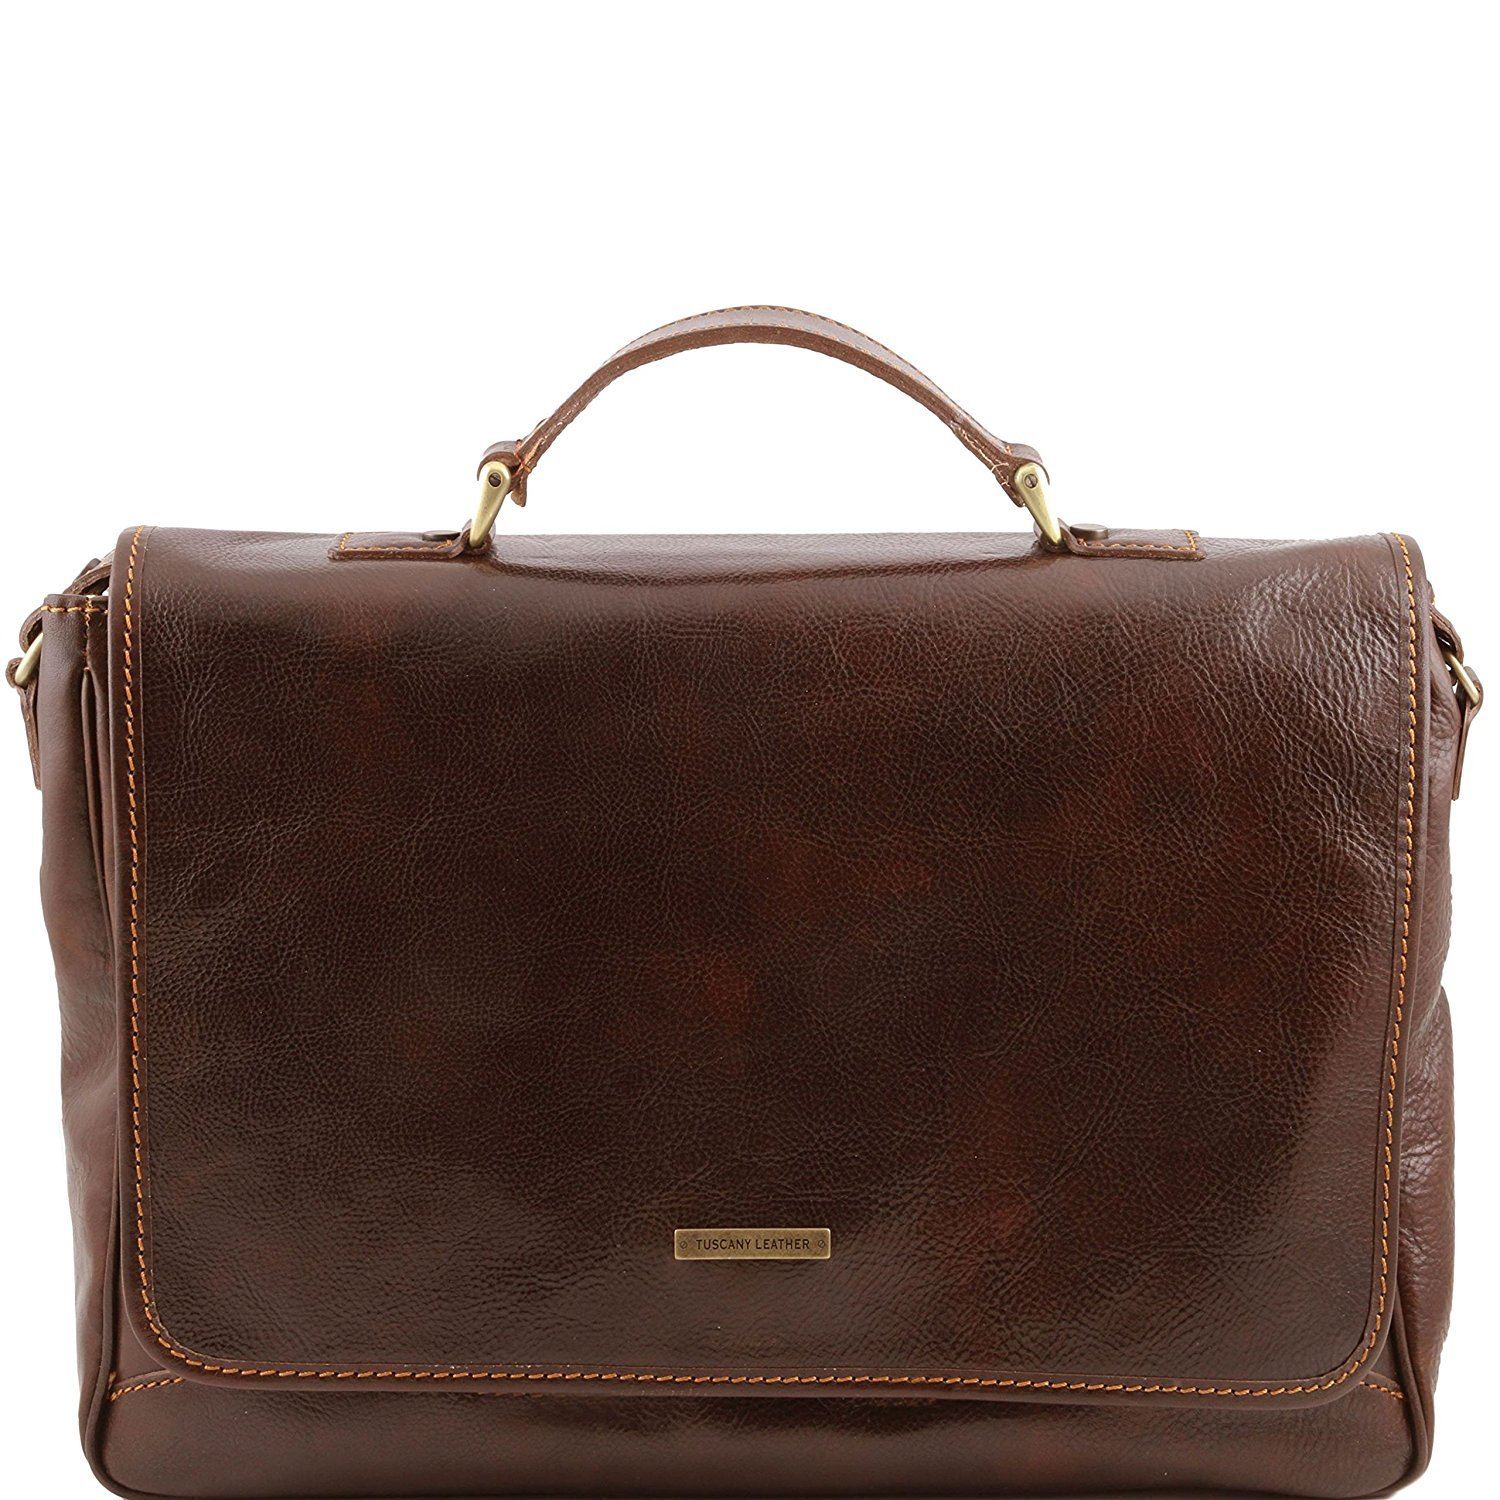 Tuscany Leather - Padova - Exclusive leather laptop case Dark Brown - TL140891/5 by Tuscany Leather